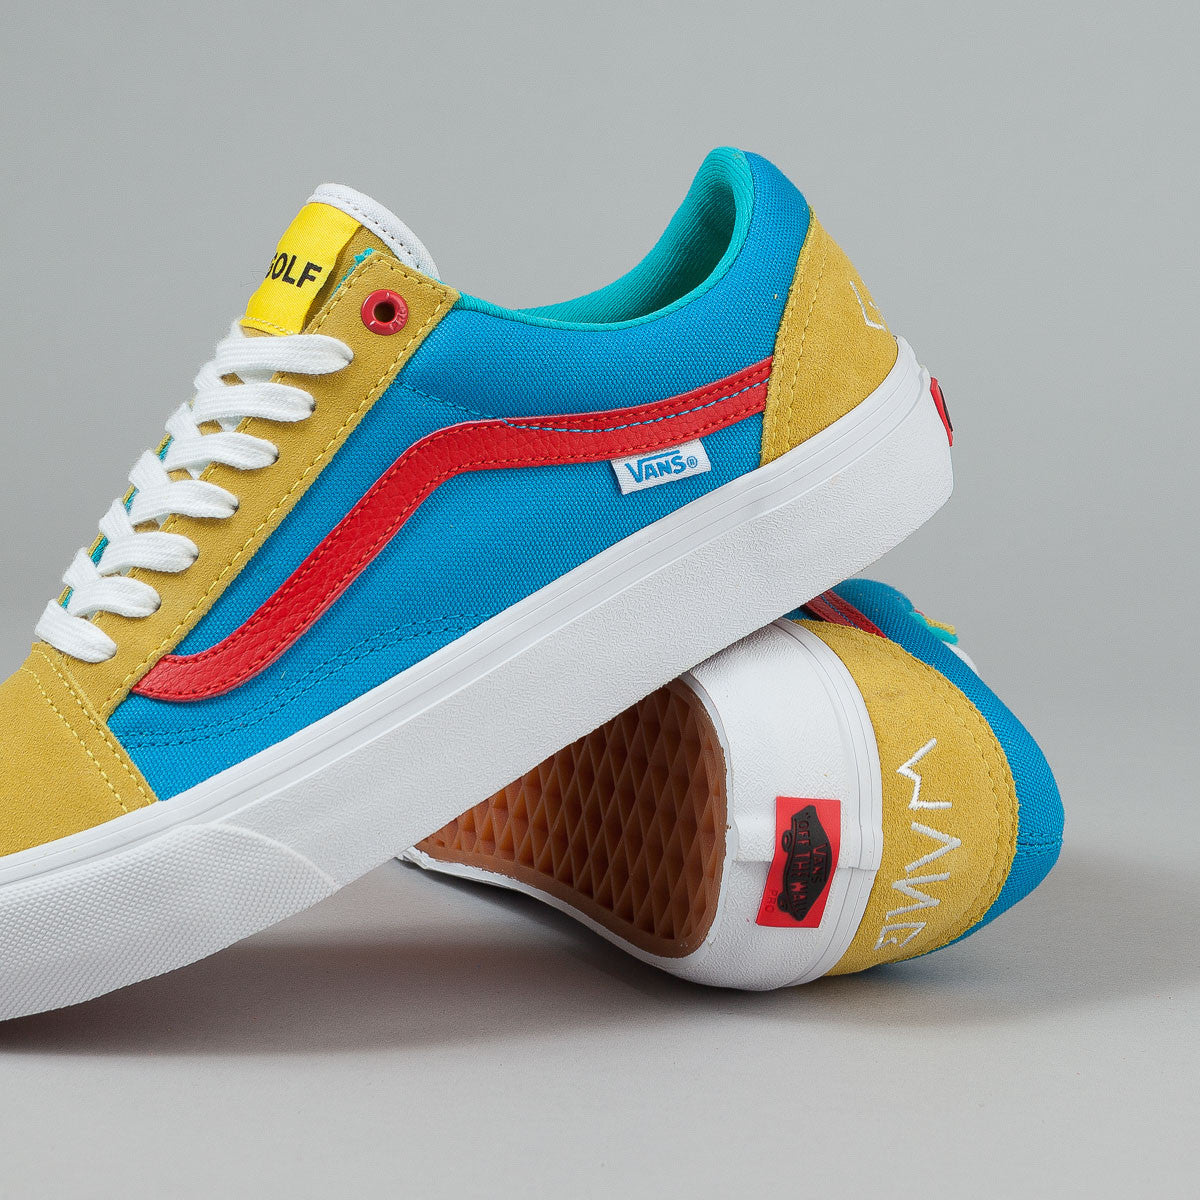 vans old skool pro shoes golf wang yellow blue red